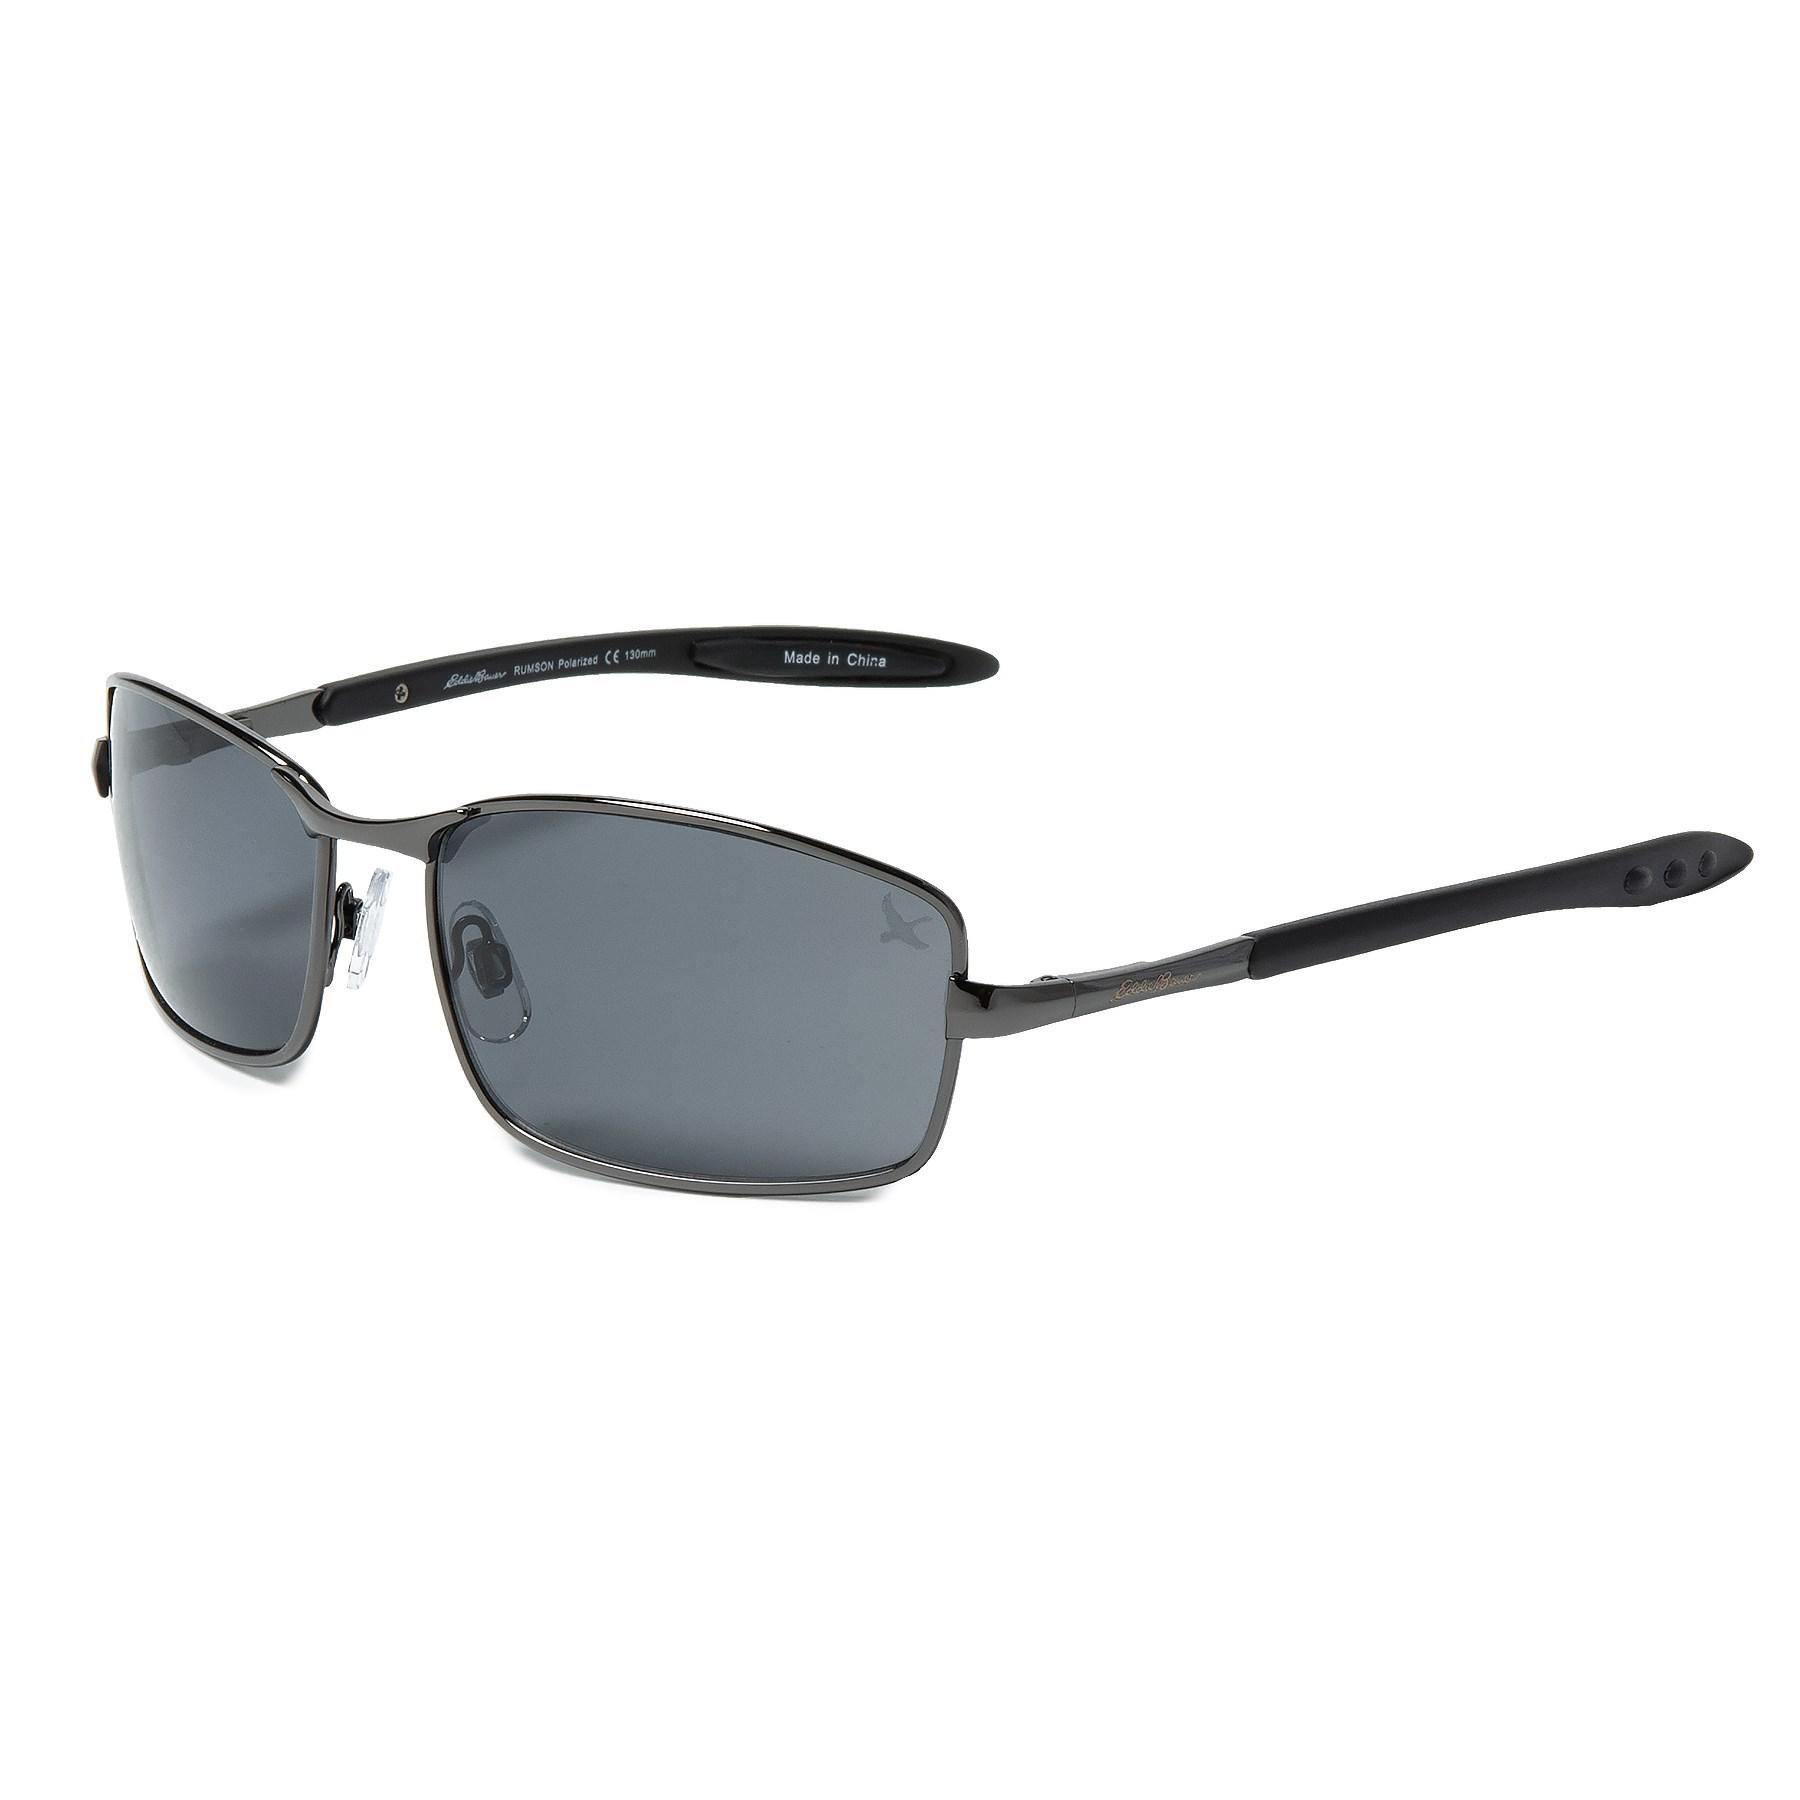 b053607805f Lyst - Eddie Bauer 61 Metal Navigator Sunglasses for Men